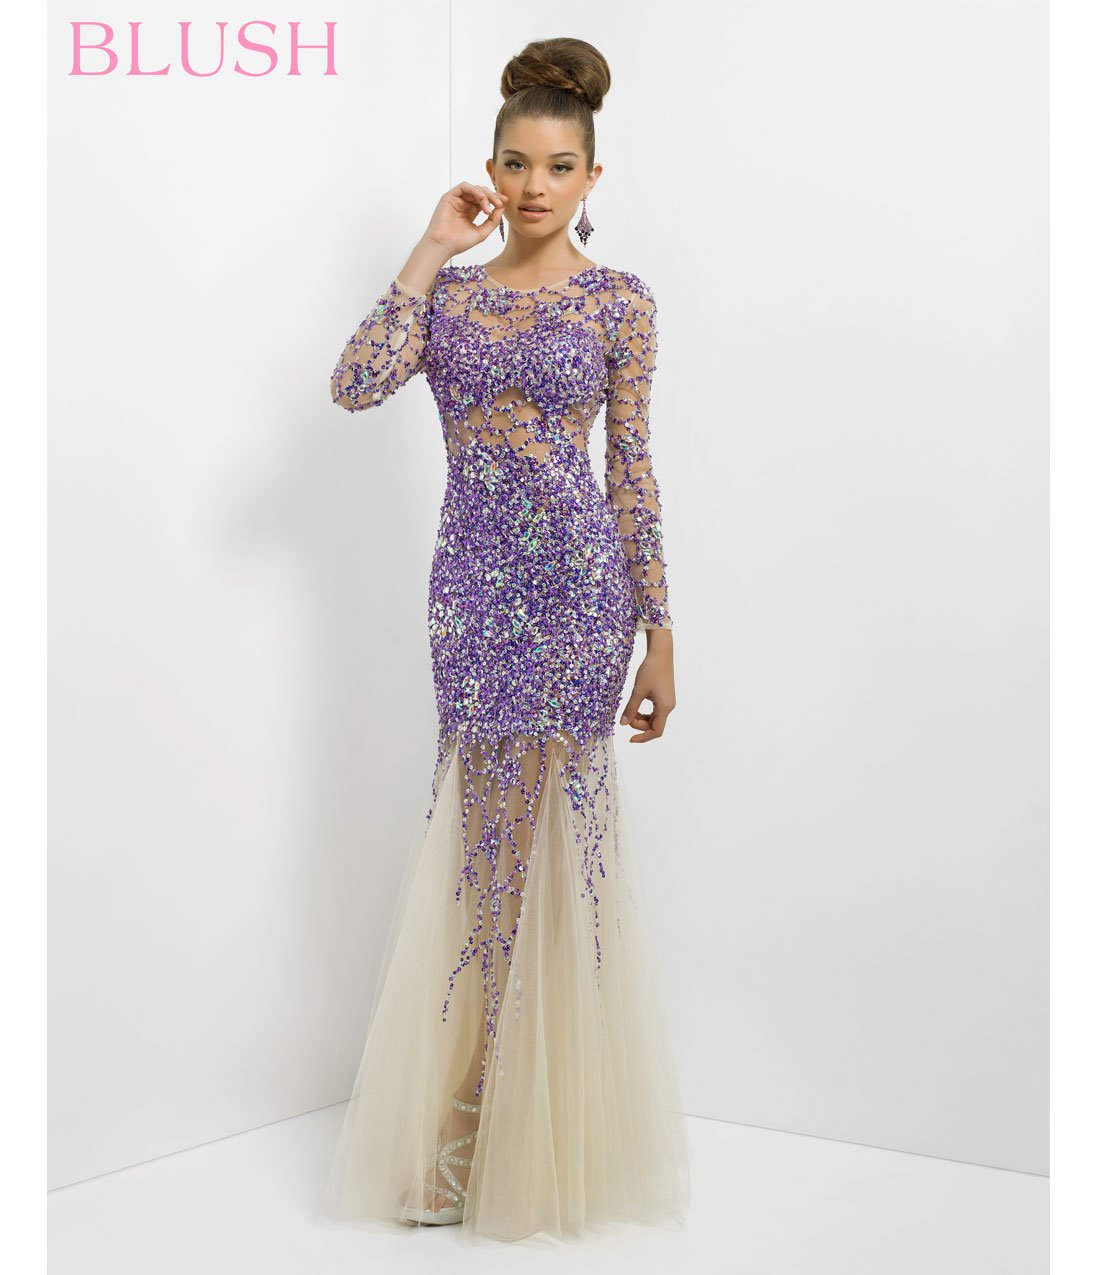 preorder blush 2014 prom dresses from unique vintage